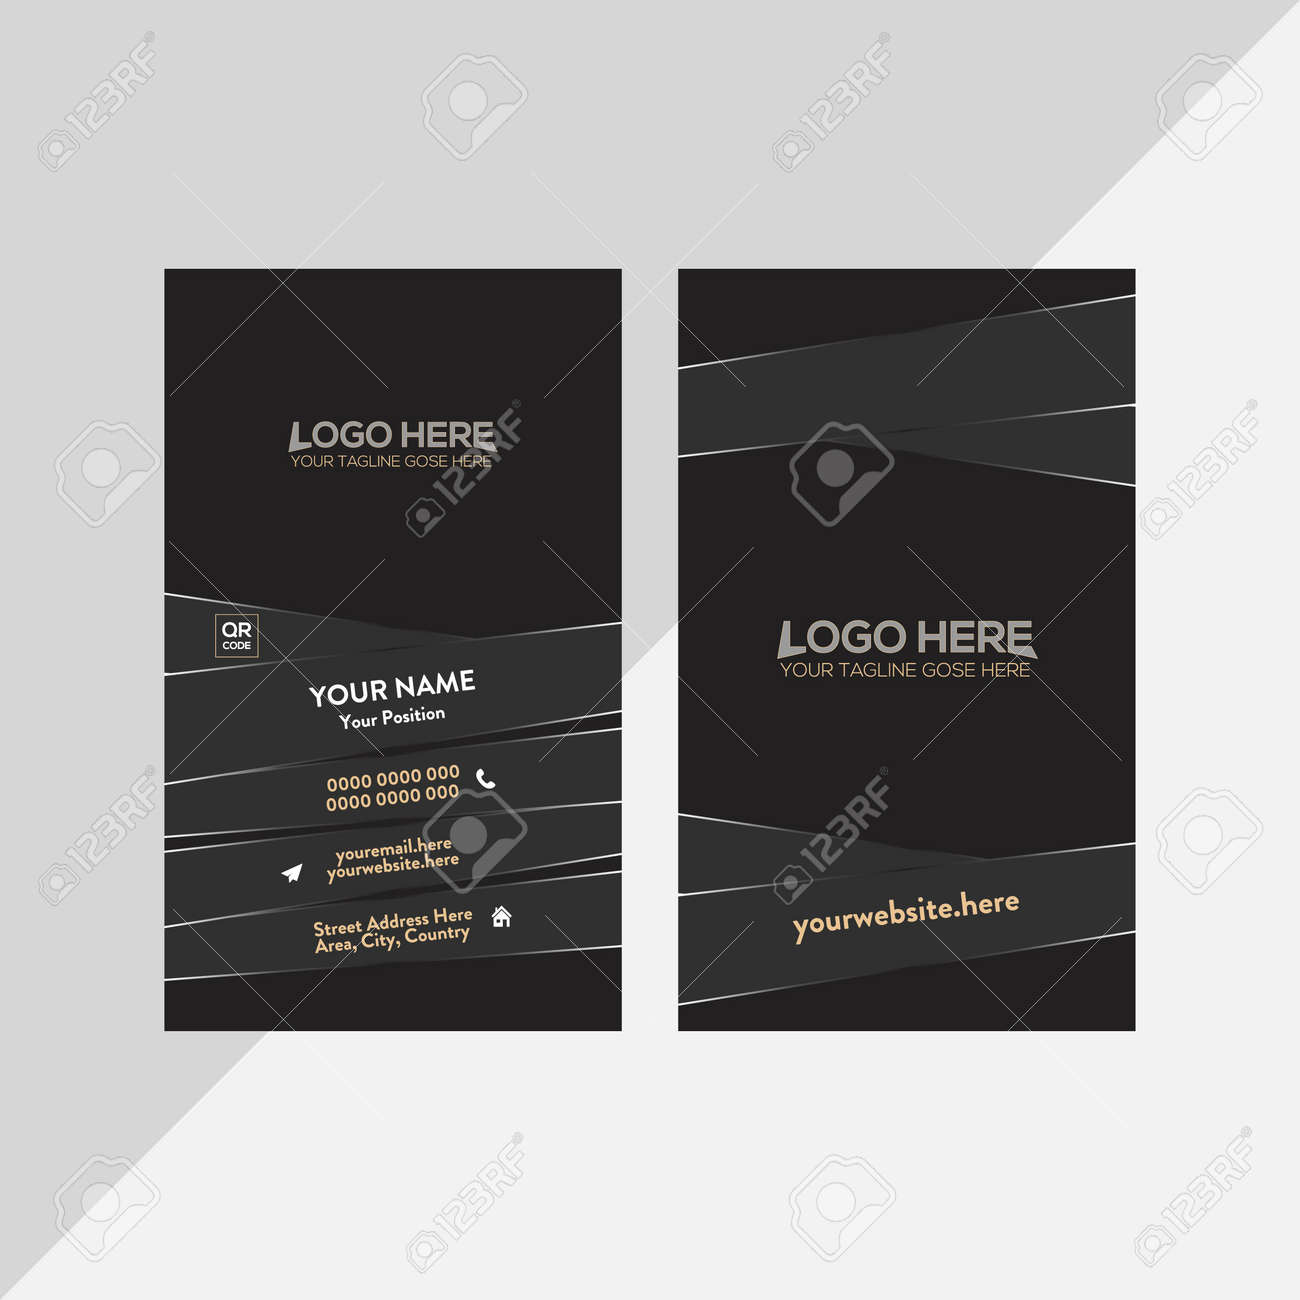 black and brown colored vector business card design for any company use - 171794031